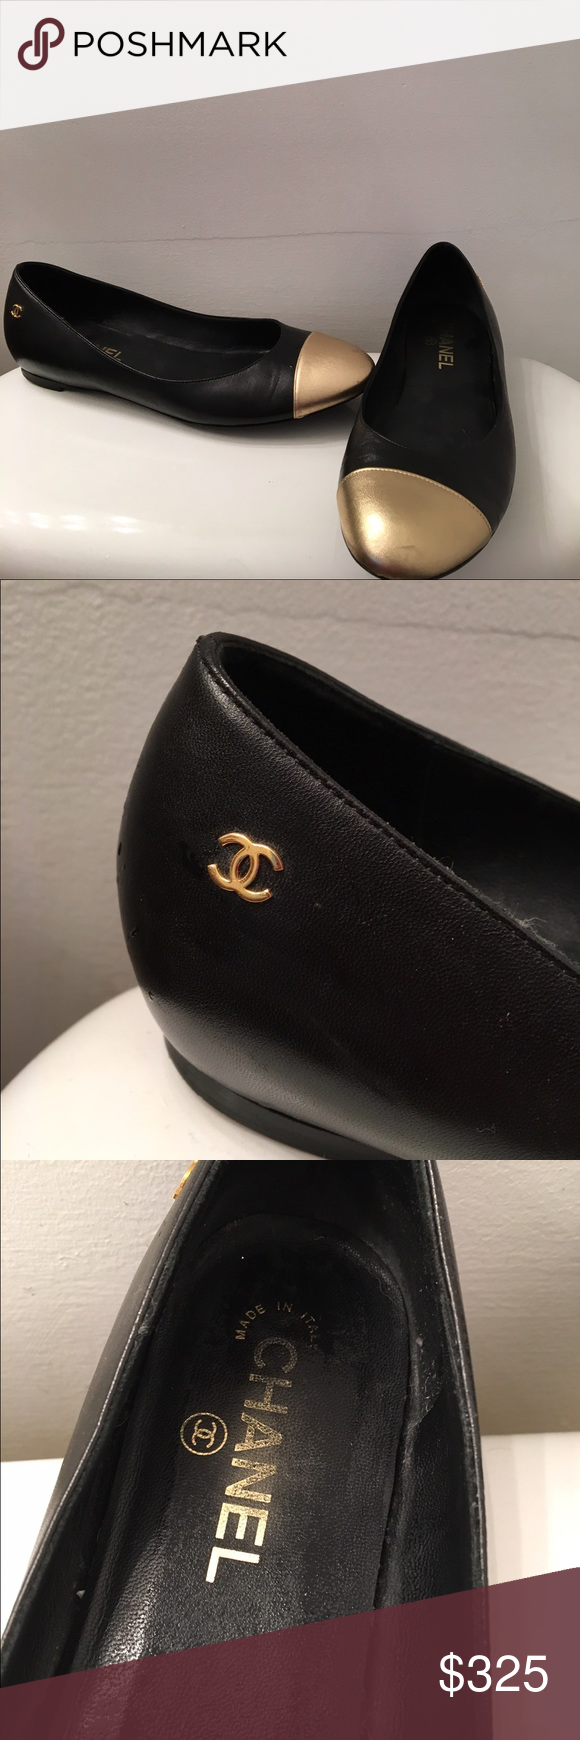 Chanel 39.5 flats Excellent condition size 39.5 (make sure you know your euro shoe size) few small scratches on gold cap on top and black part of shoe as photographed similar shoes sell for $600 on eBay open to reasonable offers! No trades! CHANEL Shoes Flats & Loafers